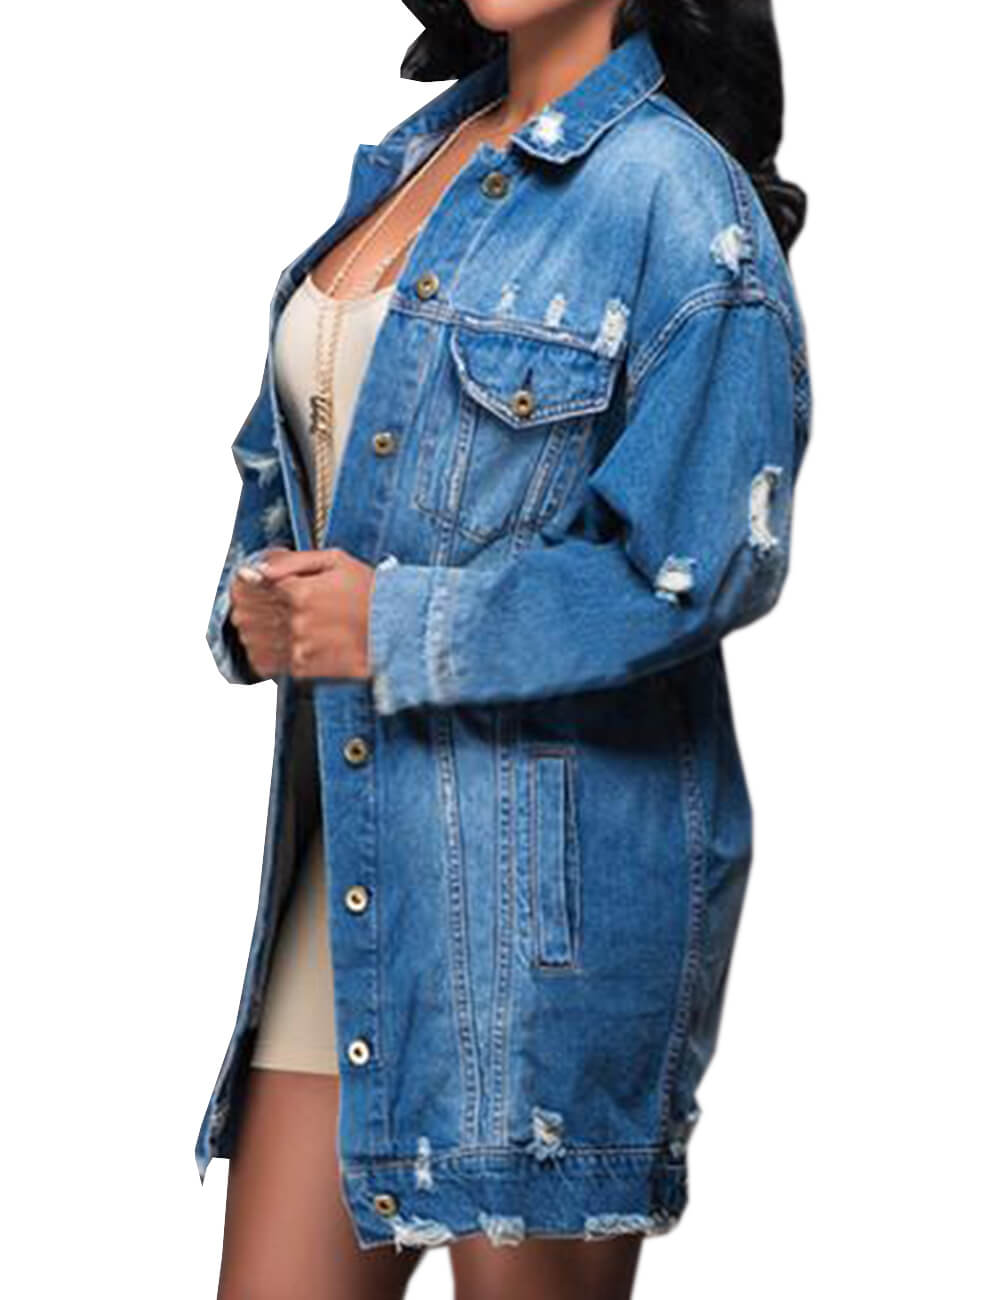 Oversized Distressed Denim Jeans Outfits Coat Fall Ripped Outerwear Denim Jacket Plus Size